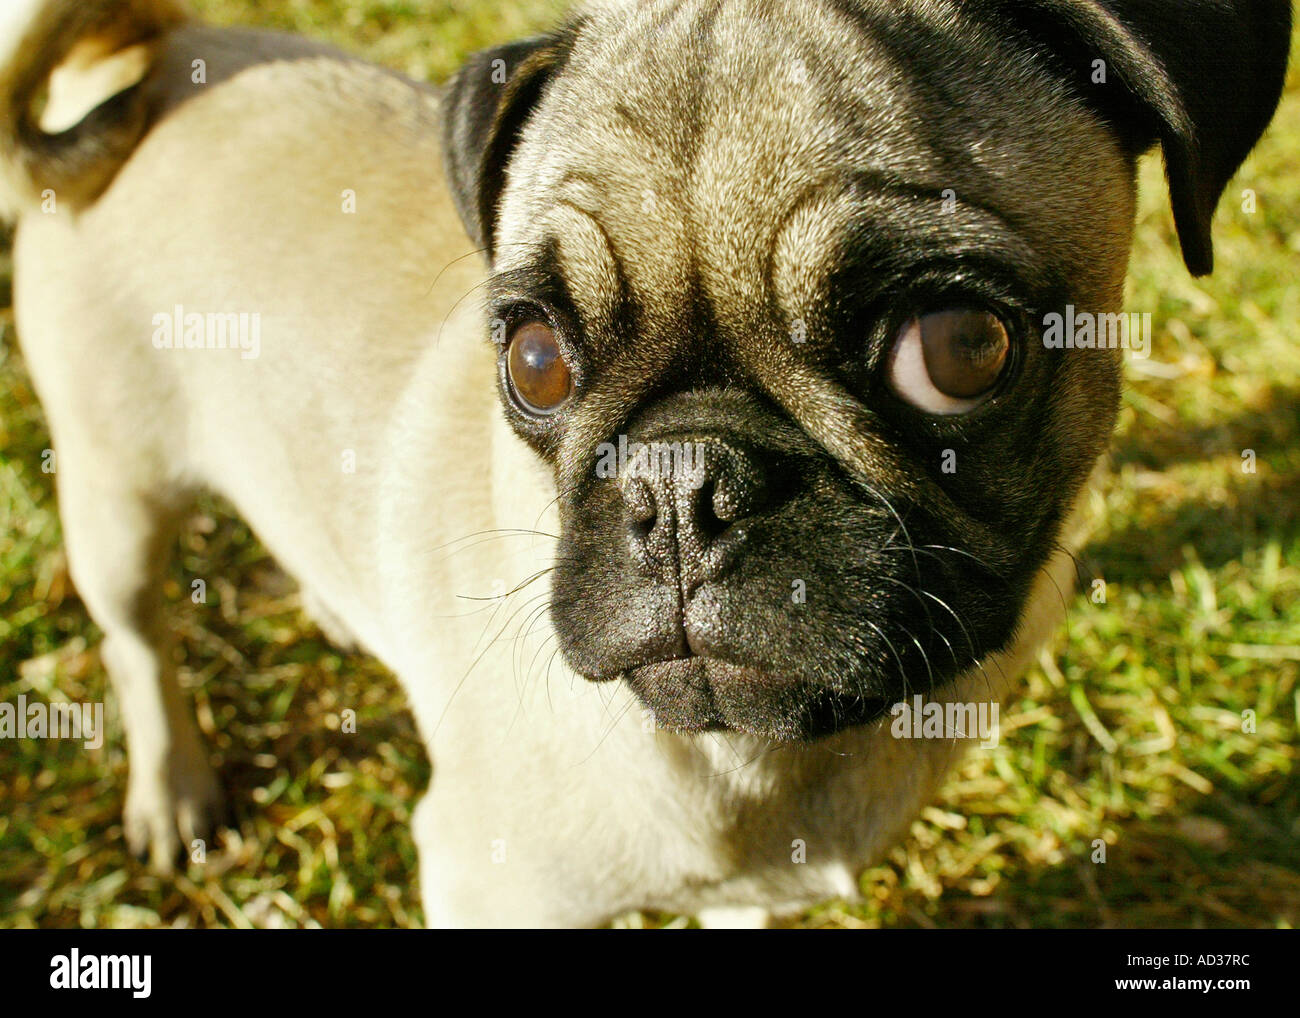 Close up of pug dog. - Stock Image